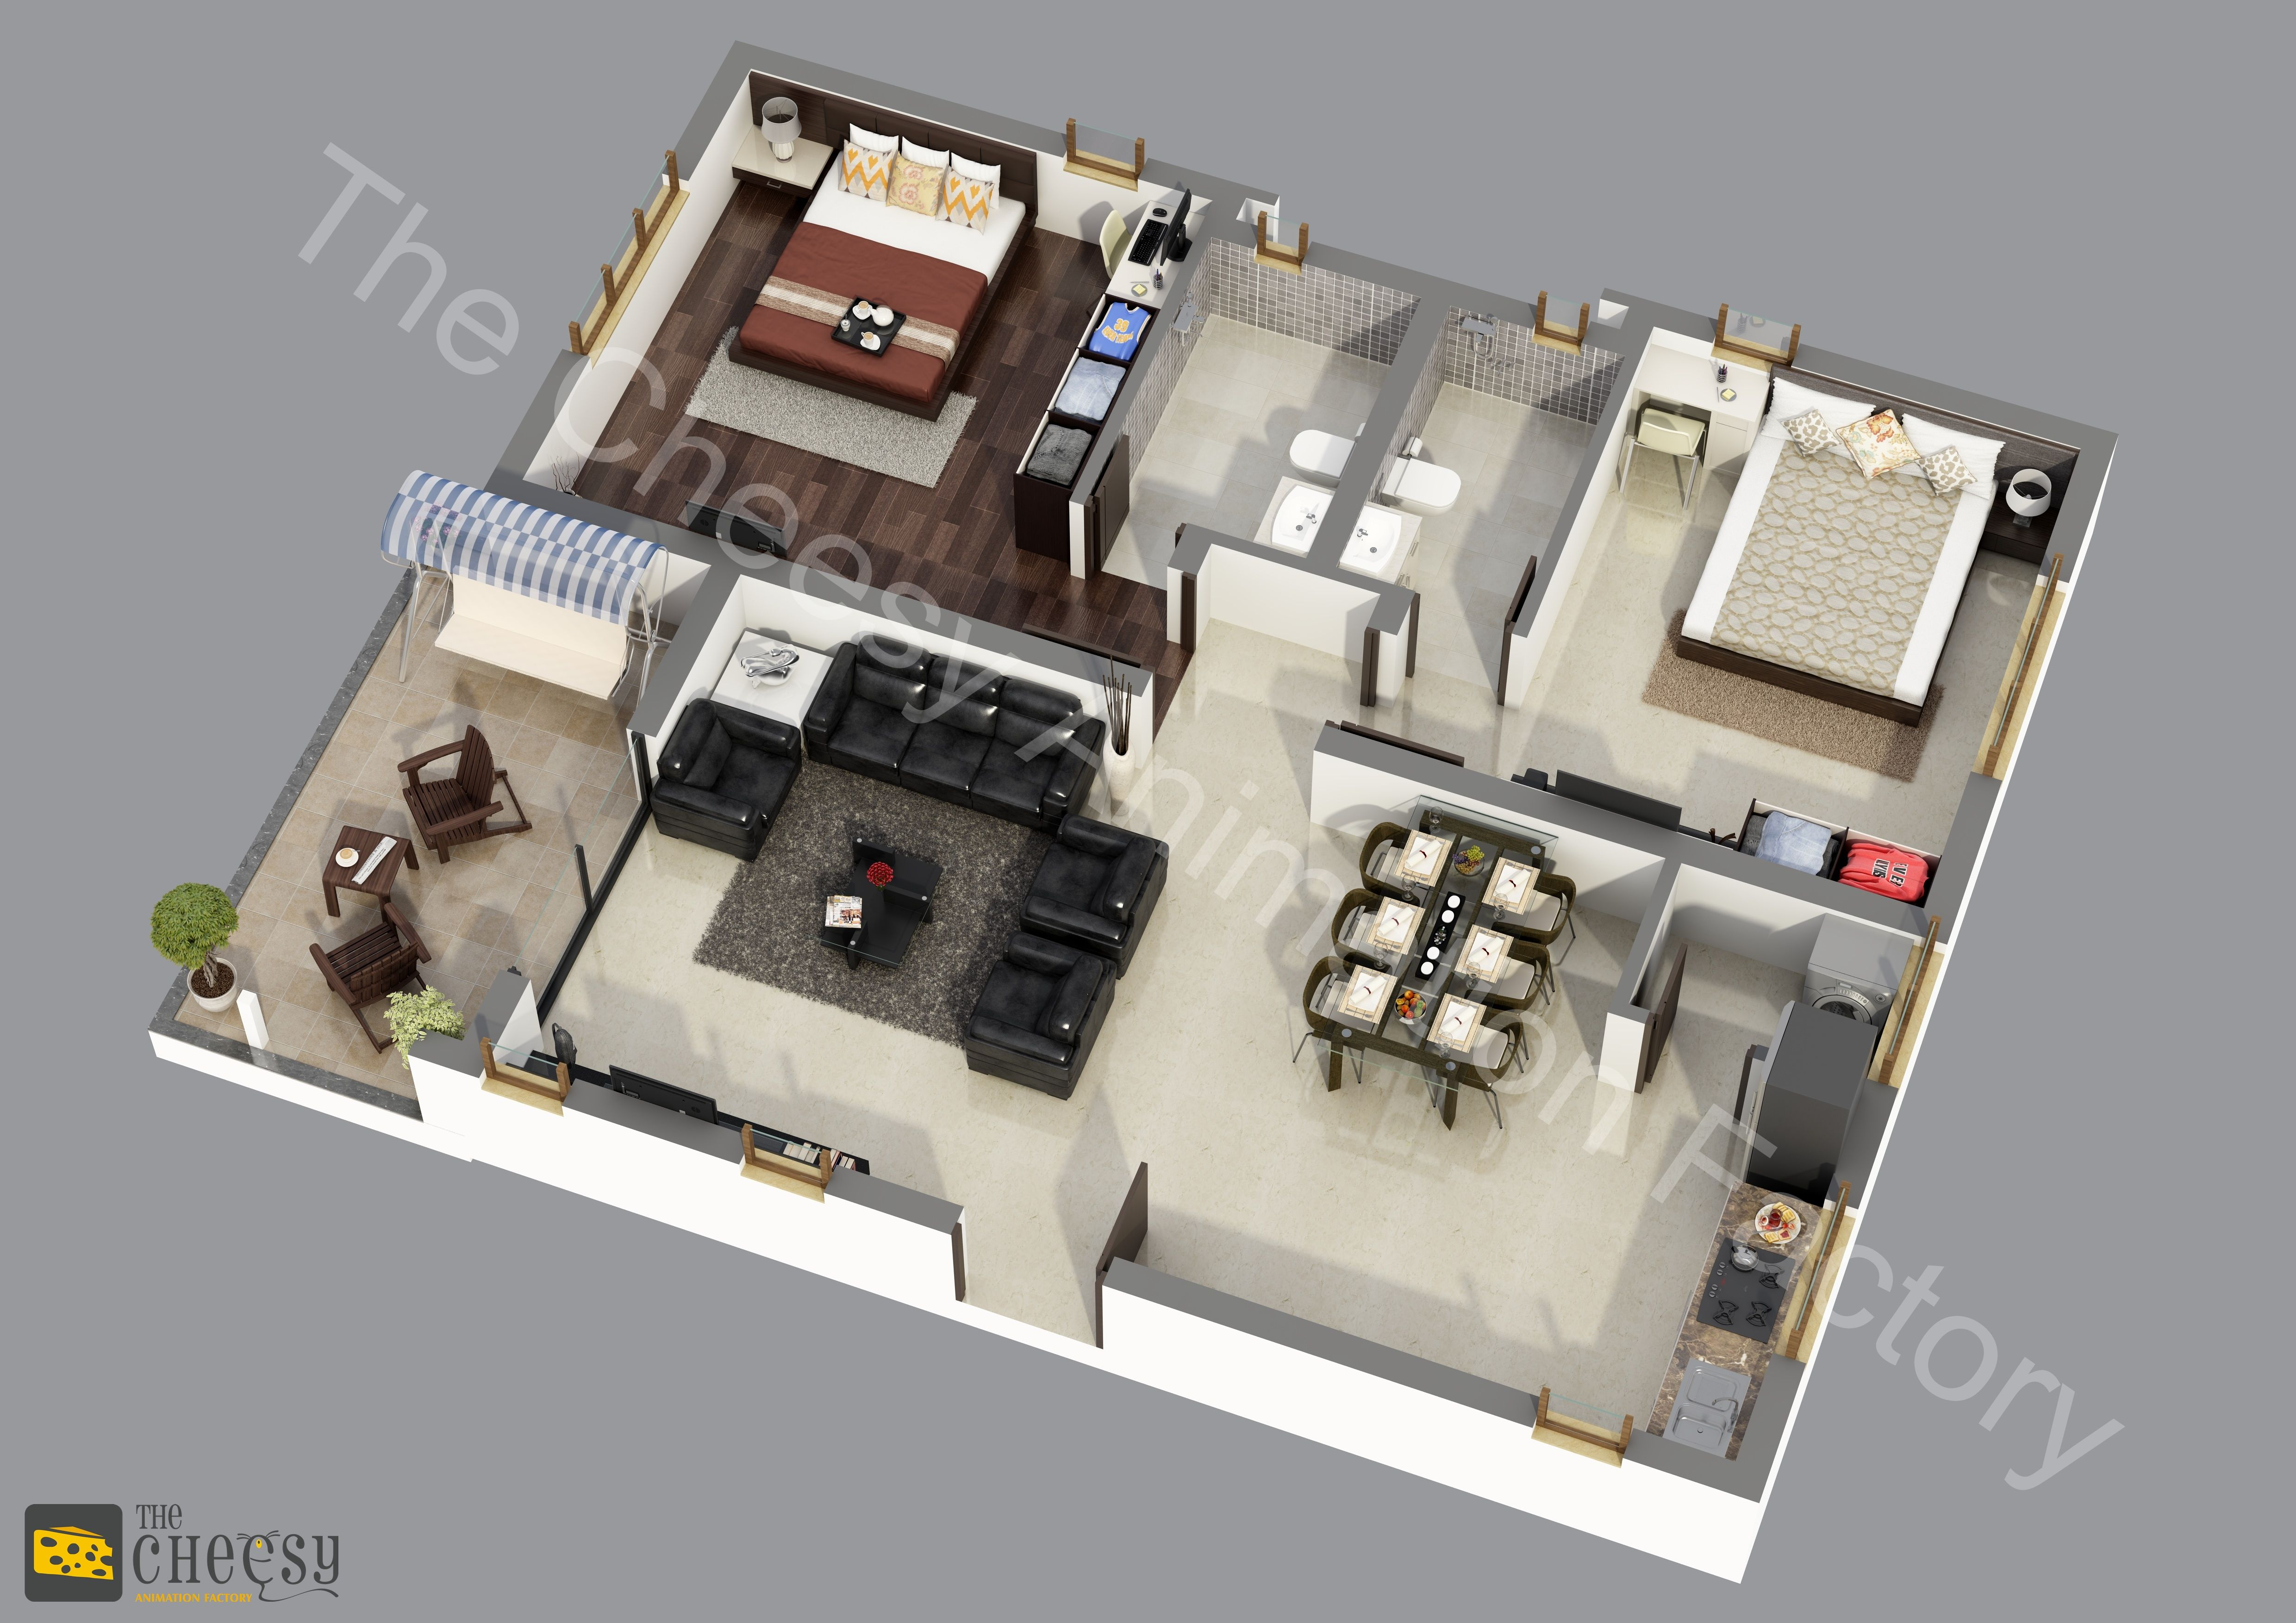 3D Floor Plan Services | 家具家装 | Floor plans, Interior design on gaming house plans, web house plans, paper home plans, beach house plans, mine craft house plans, architecture house plans, small house plans, hd house plans, car house plans, 3-dimensional house plans, digital house plans, tiny house plans, luxury contemporary house plans, traditional house plans, unique house plans, 3-bedroom ranch house plans, floor plans, windows house plans, aerial house plans, 4d house plans,